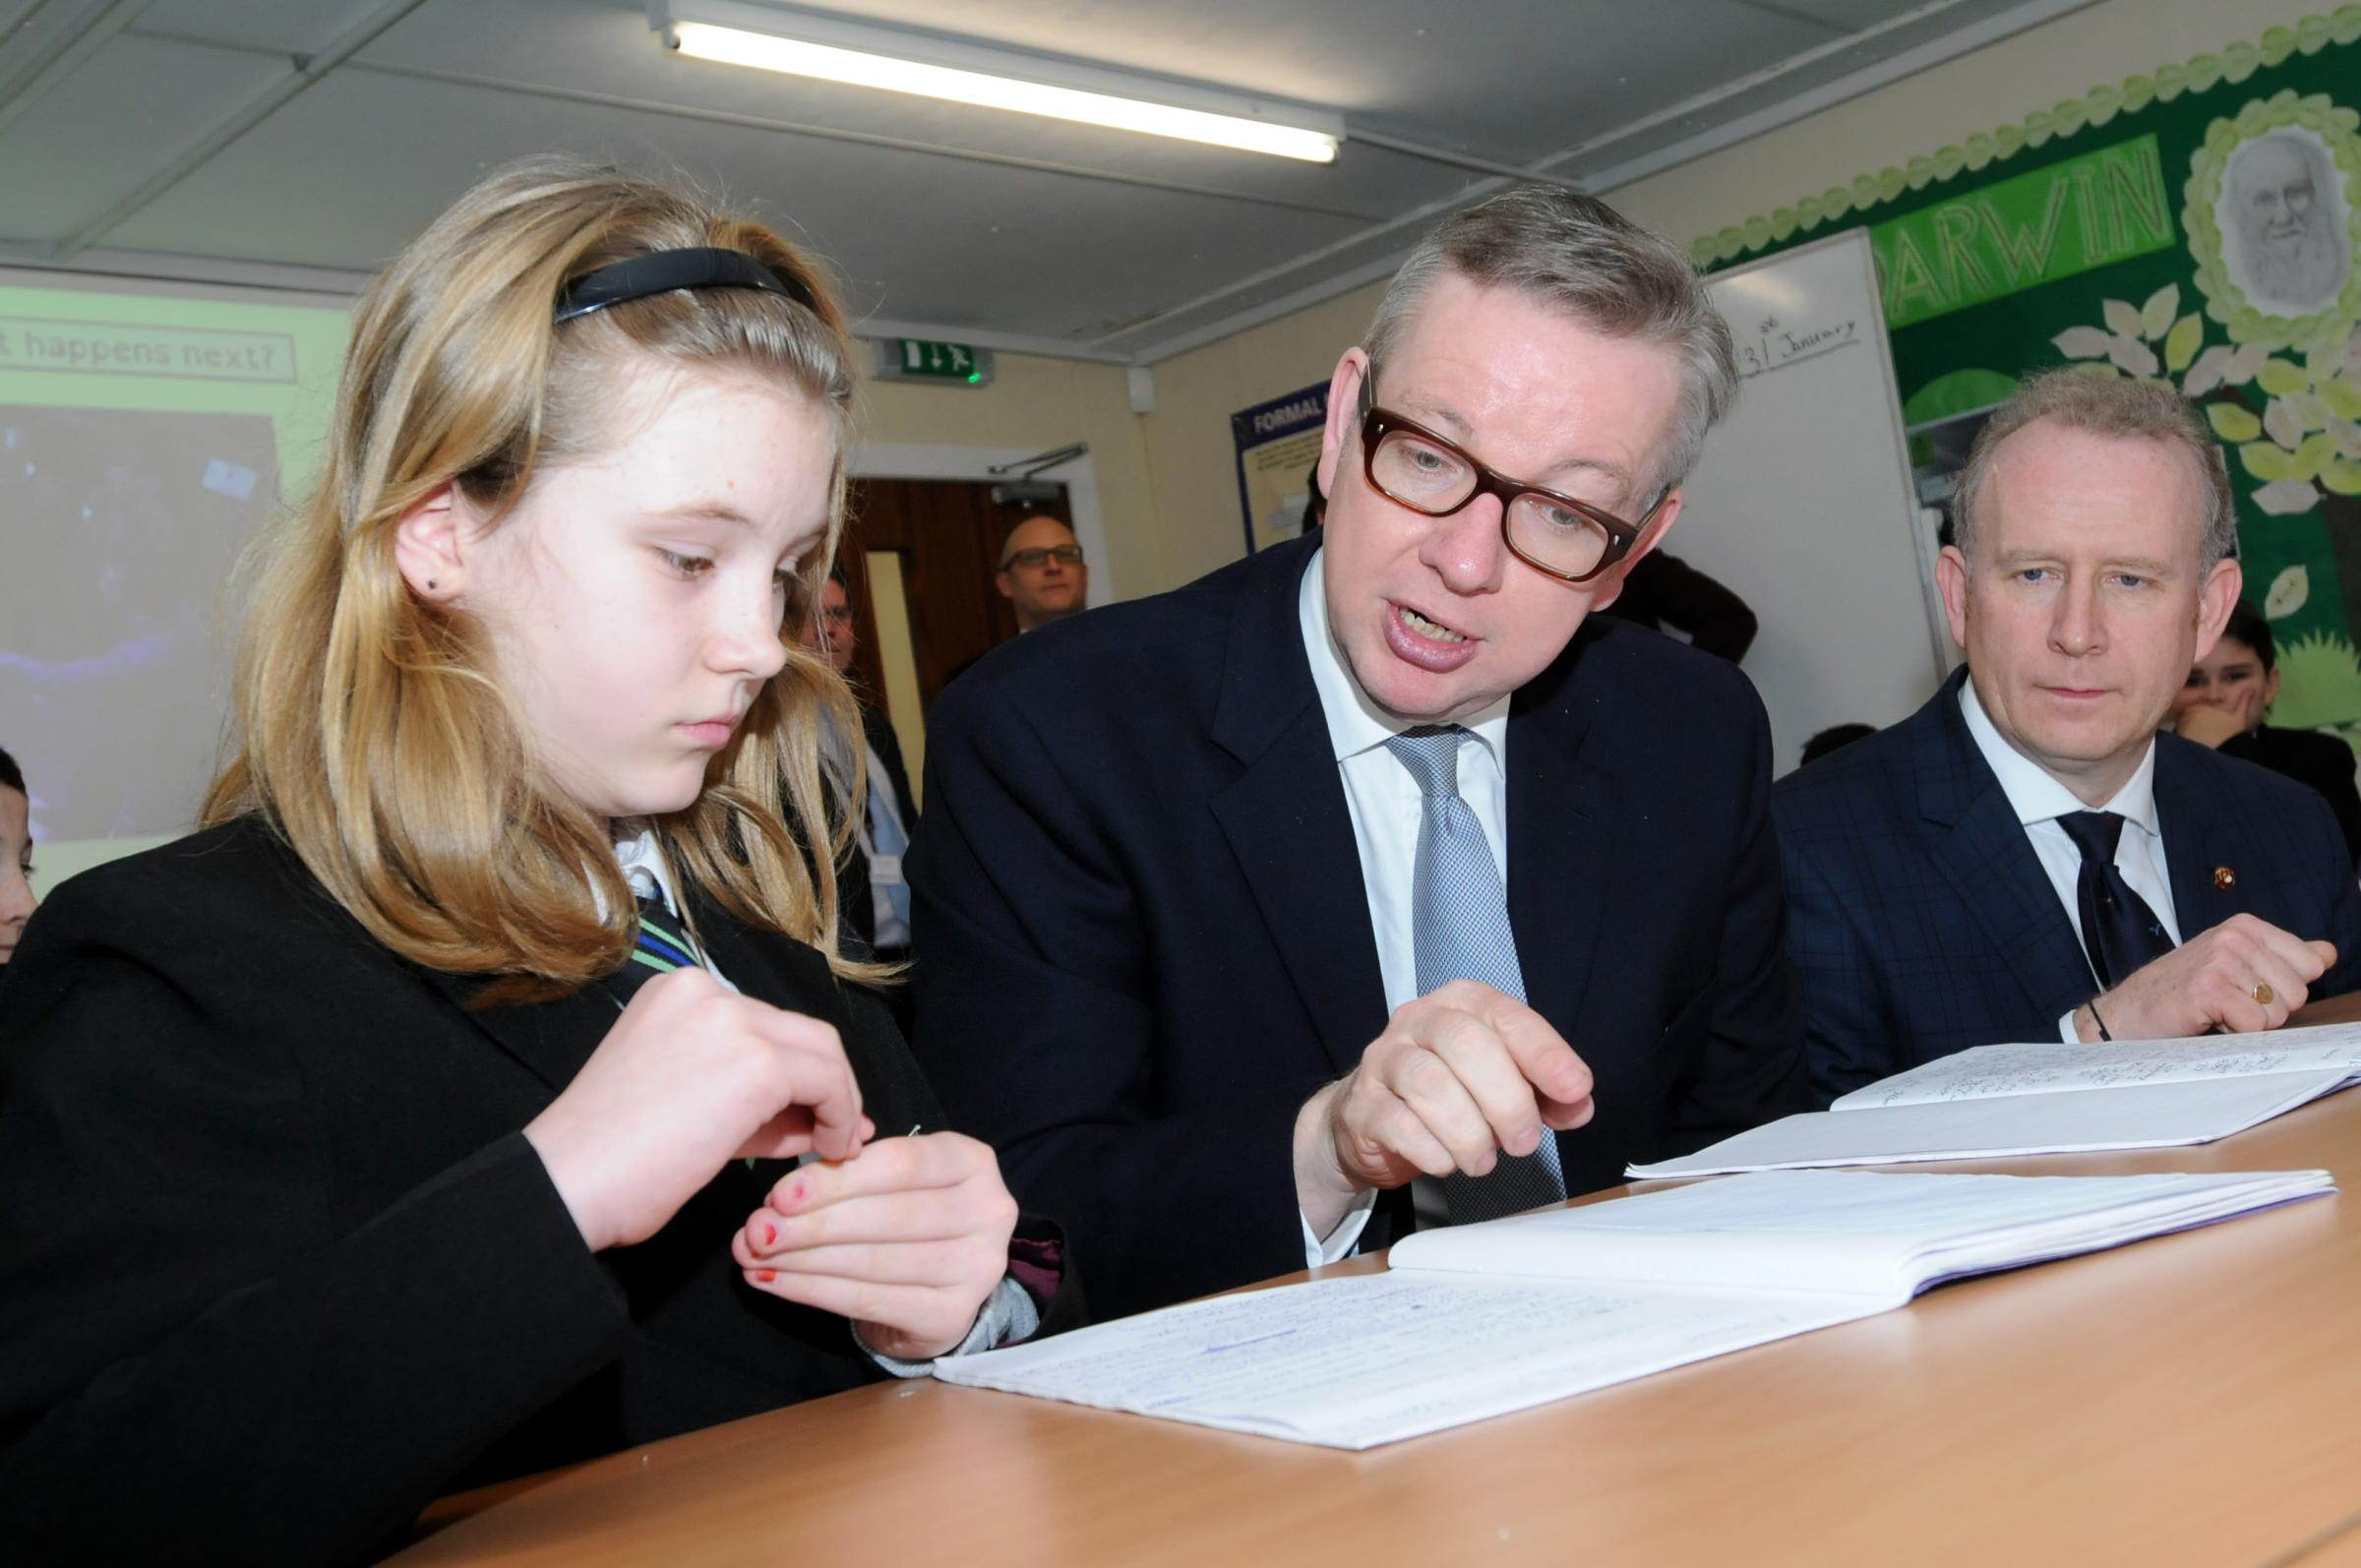 VIDEO: Education Minister Michael Gove visits Runcorn school today